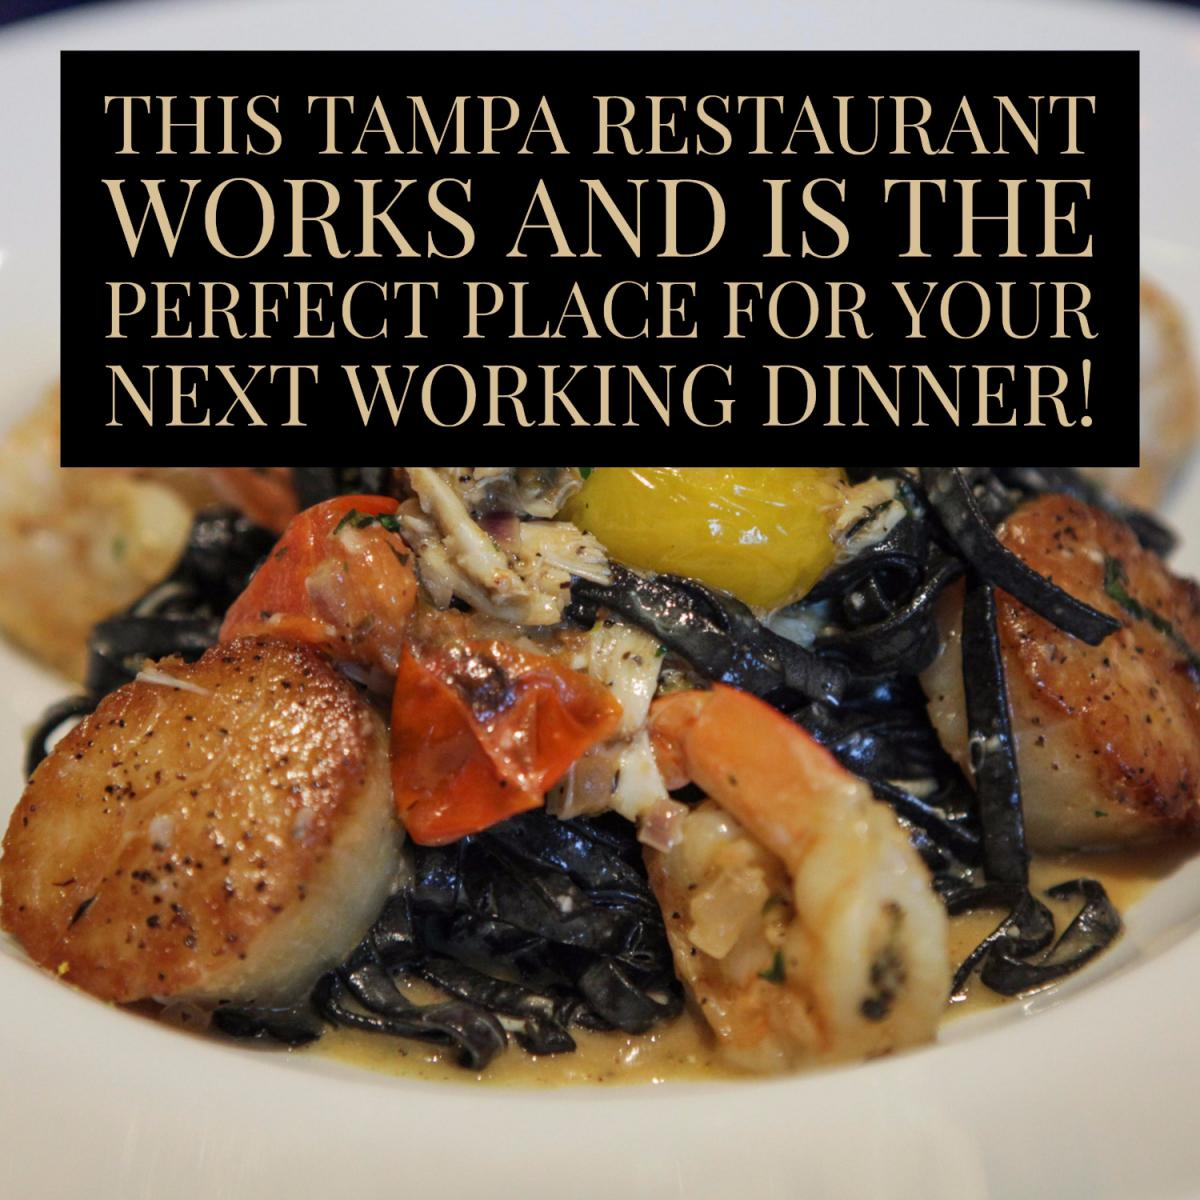 This Tampa Restaurant Works for Working Dinners